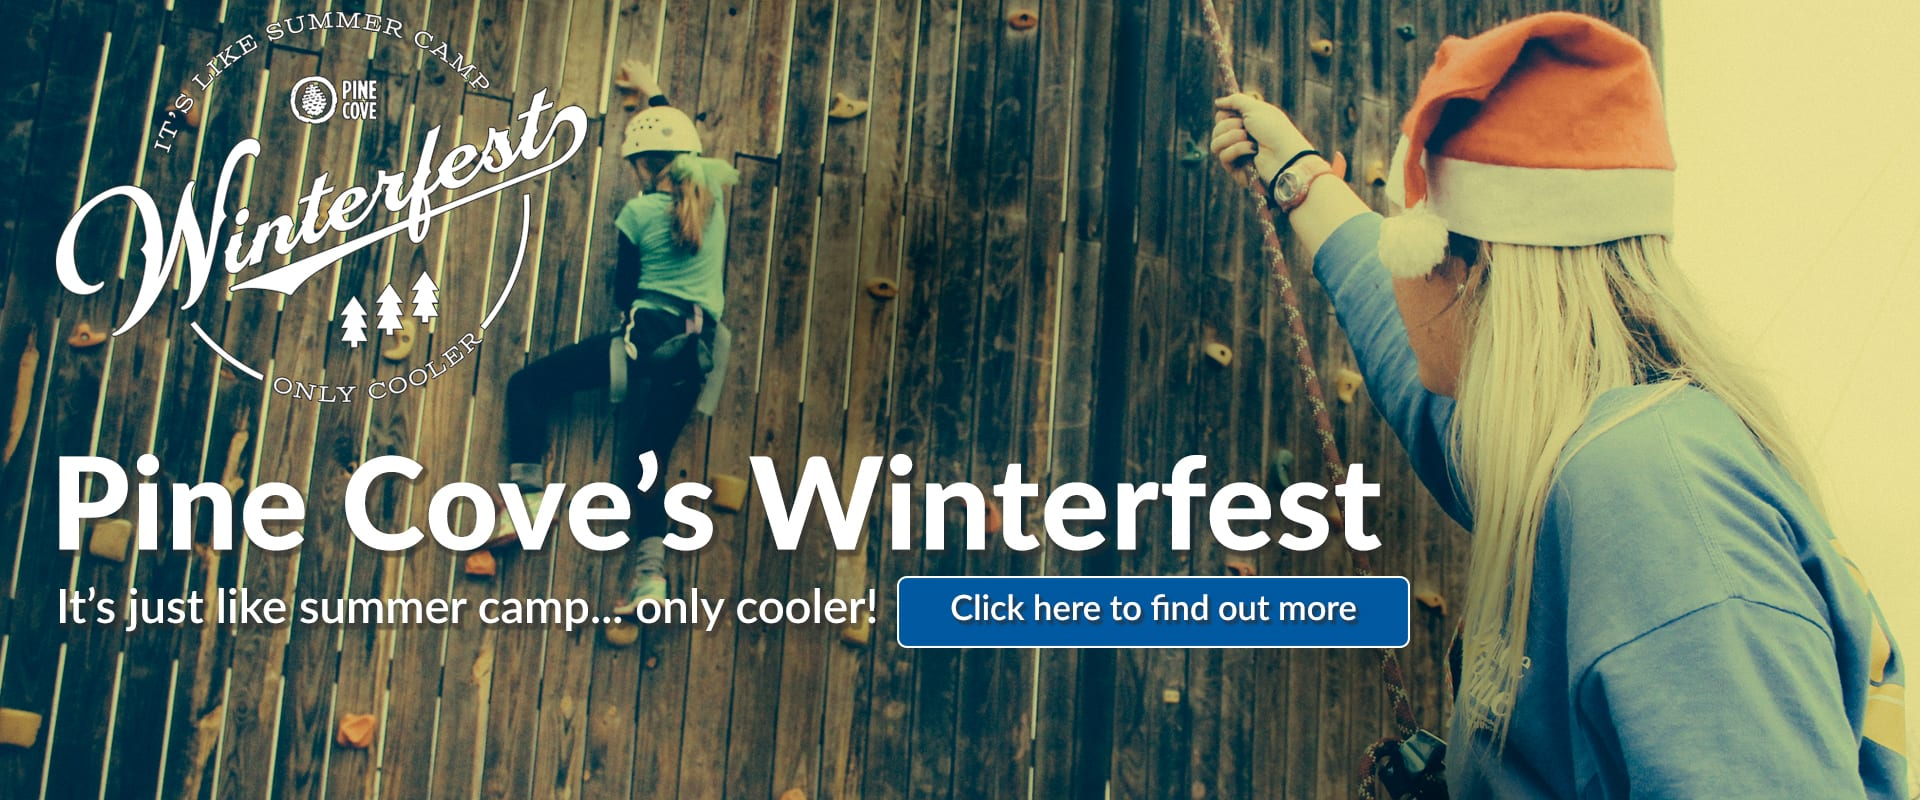 Pine Cove Winterfest – KGLY